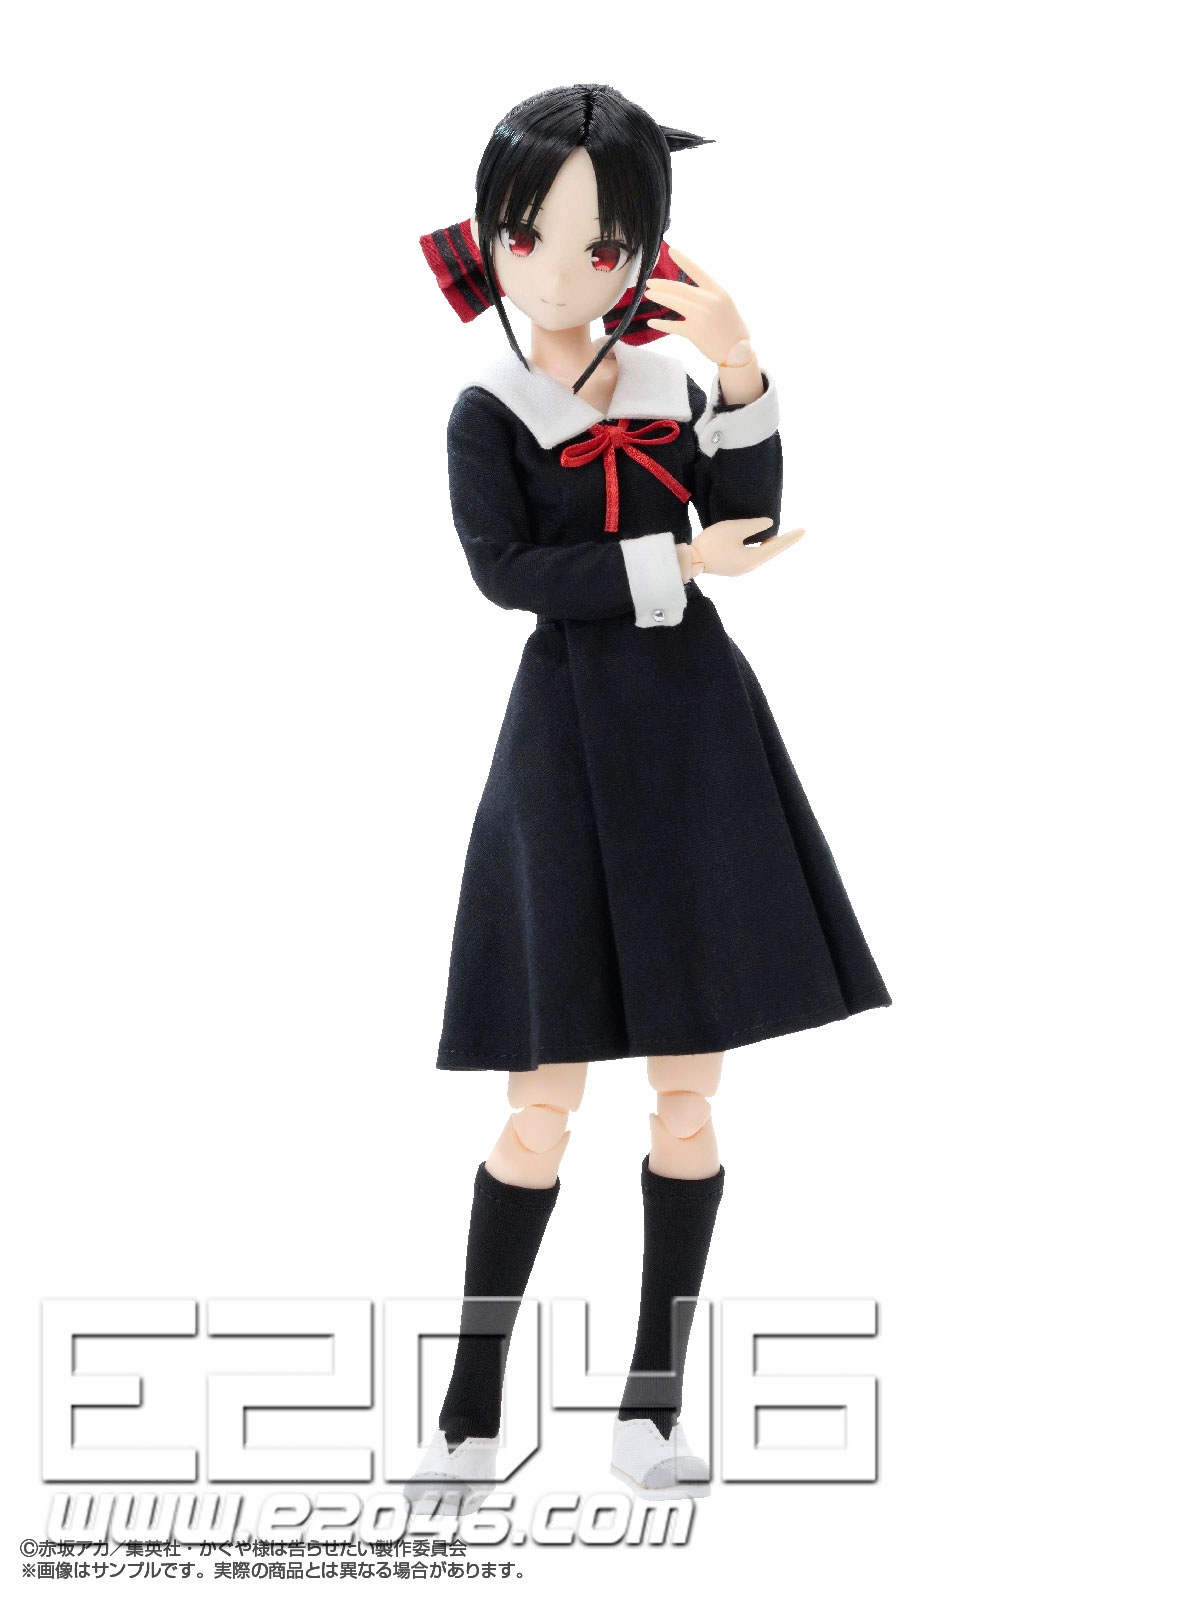 Shinomiya Kaguya (DOLL)